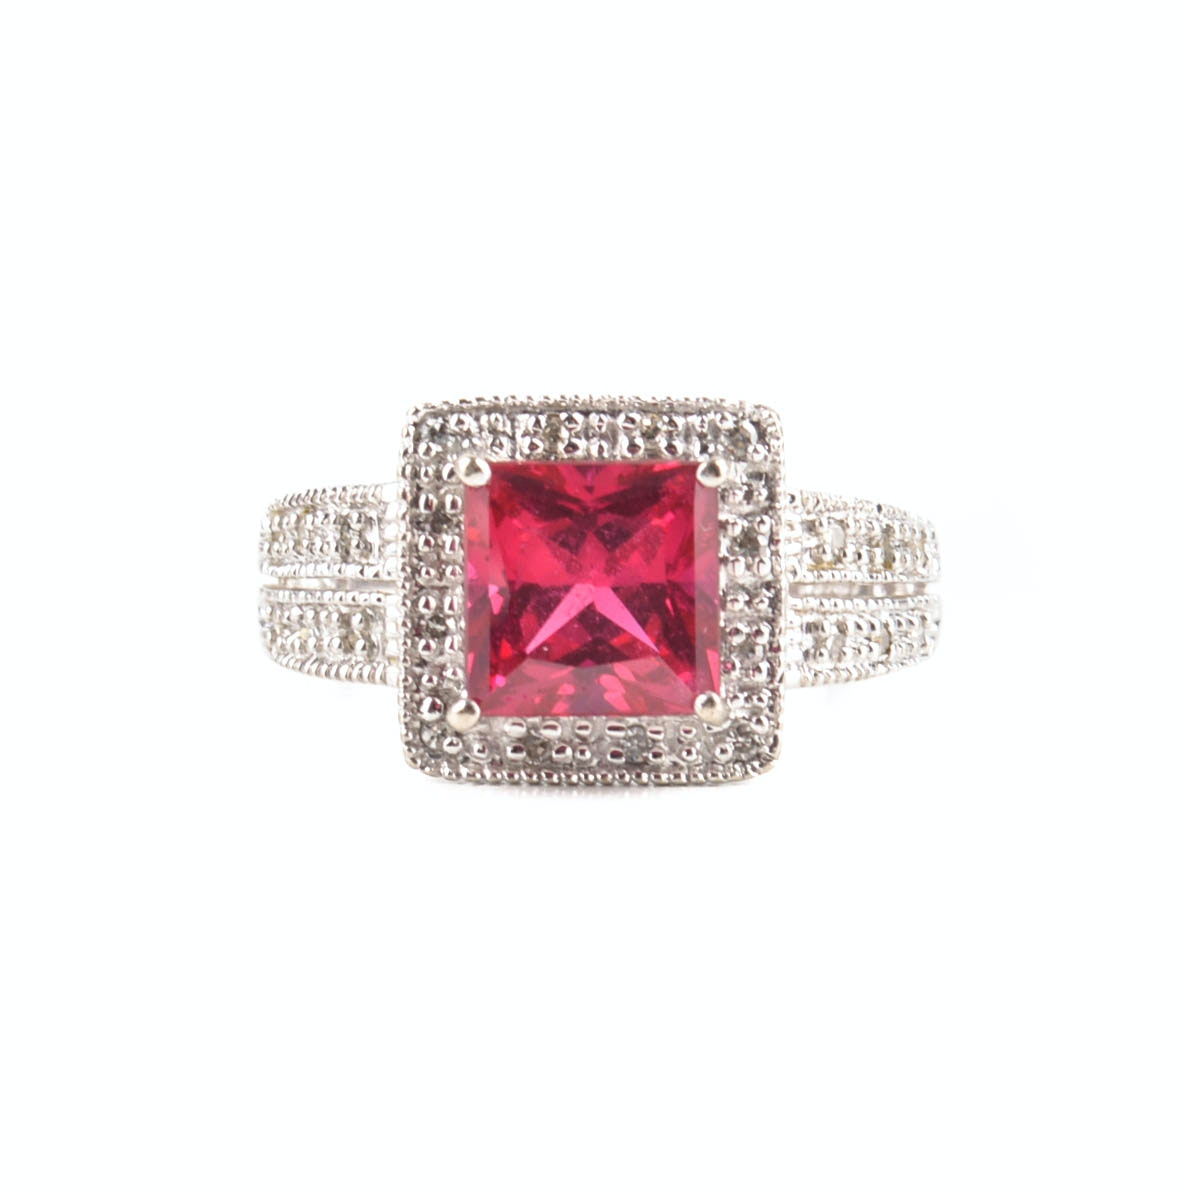 10K White Gold Diamond and Synthetic Ruby Ring